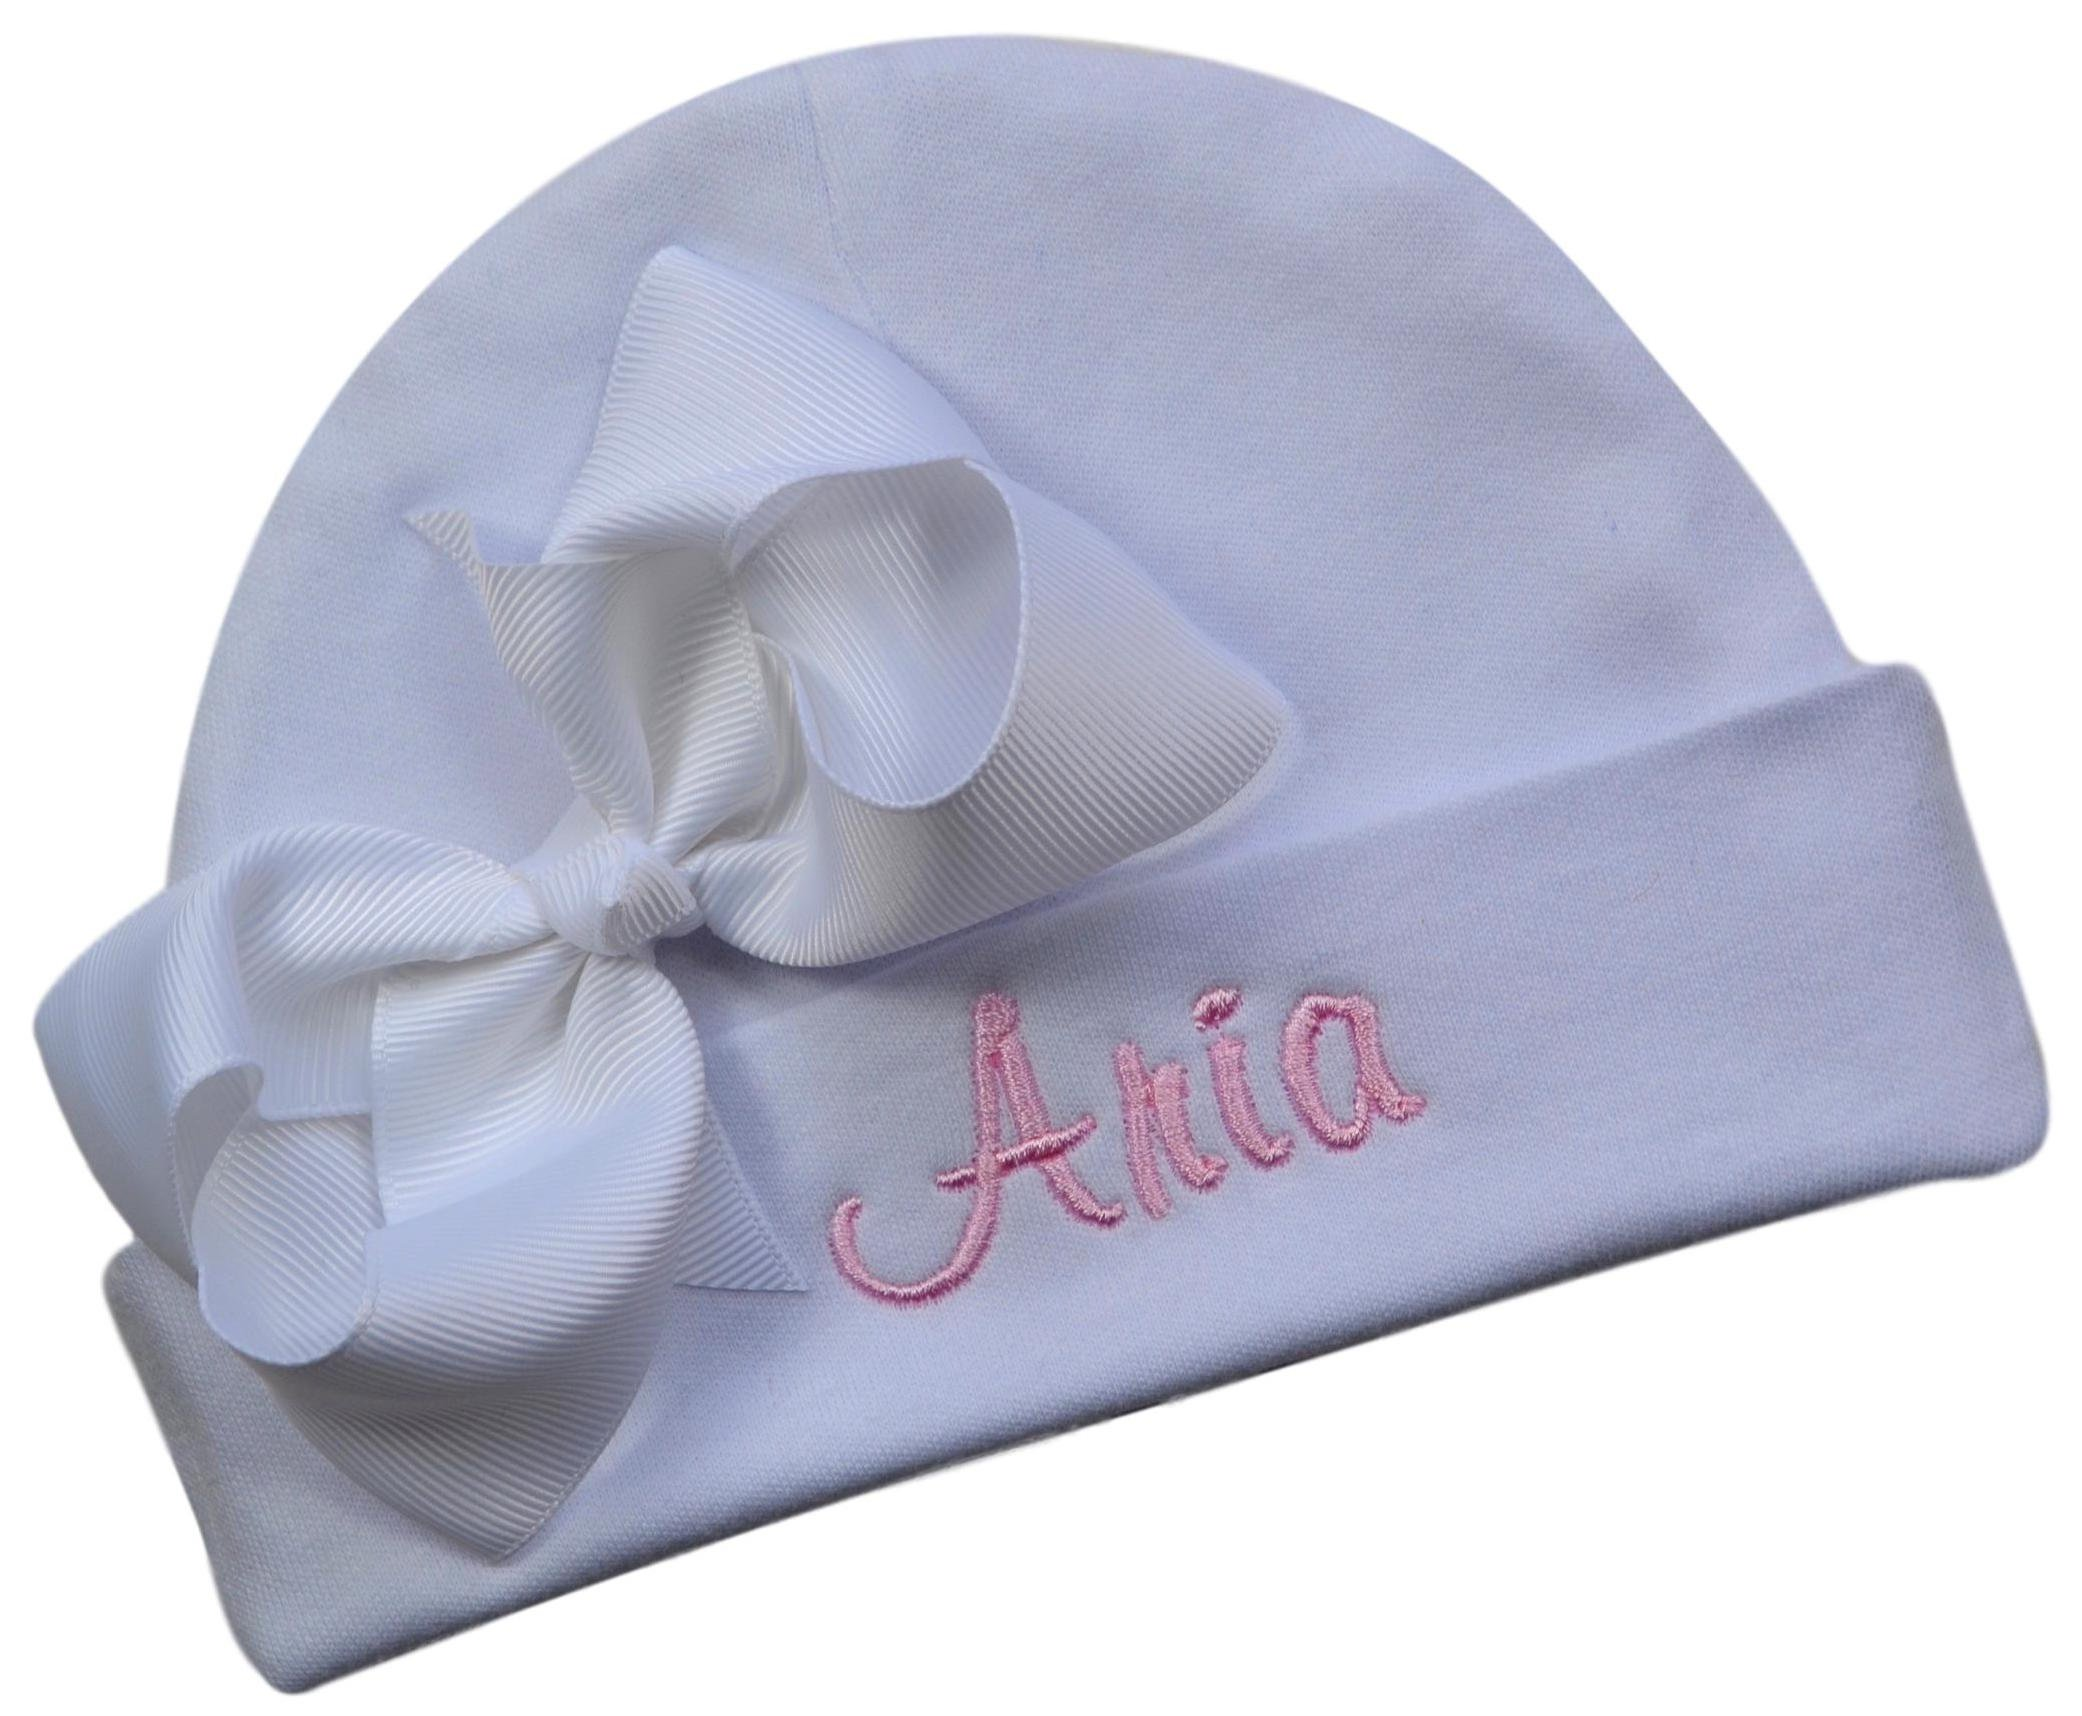 bb96b6ae1 Personalized Embroidered Baby Girl Hat with Grosgrain Bow with ...